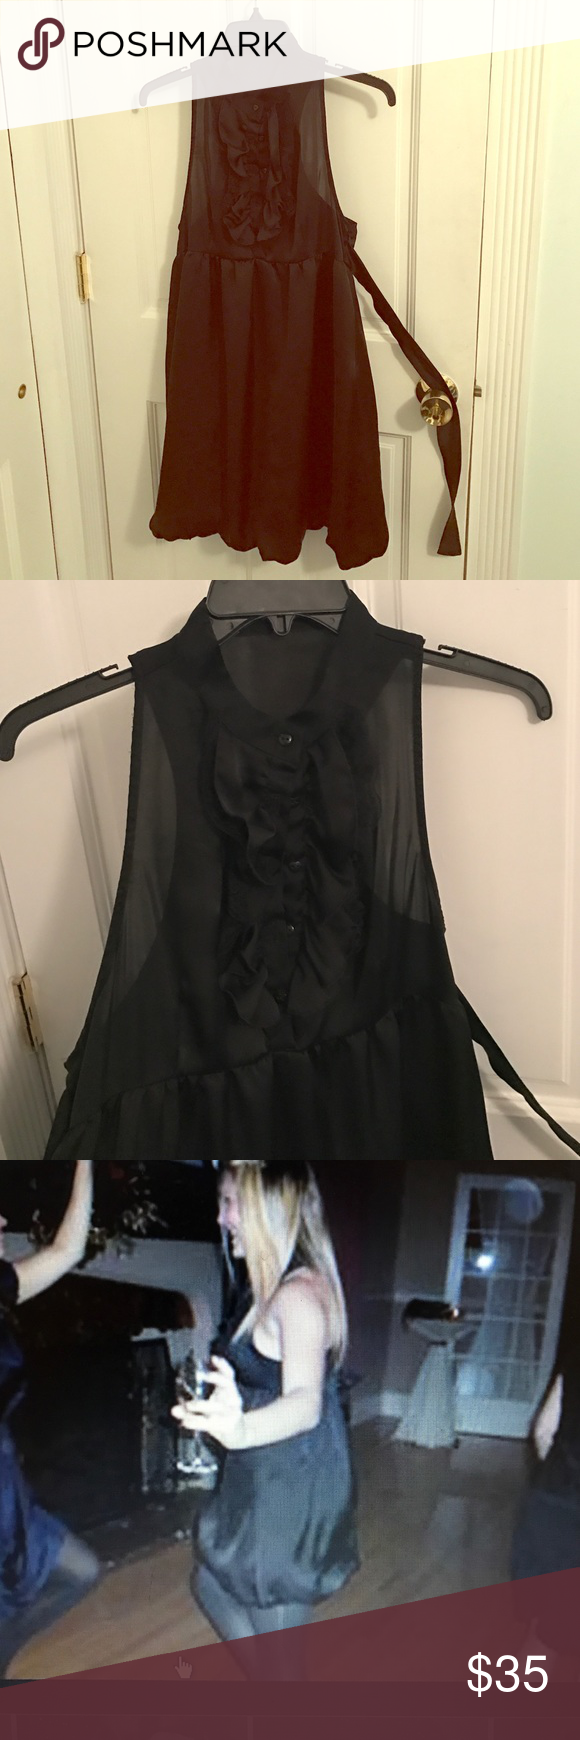 Black Zara party dress Black dress from Zara. Polyester. Has pretty ruffle detailing in the front that buttons up. I included photos wearing it because it's hard to tell from photos Dresses Mini